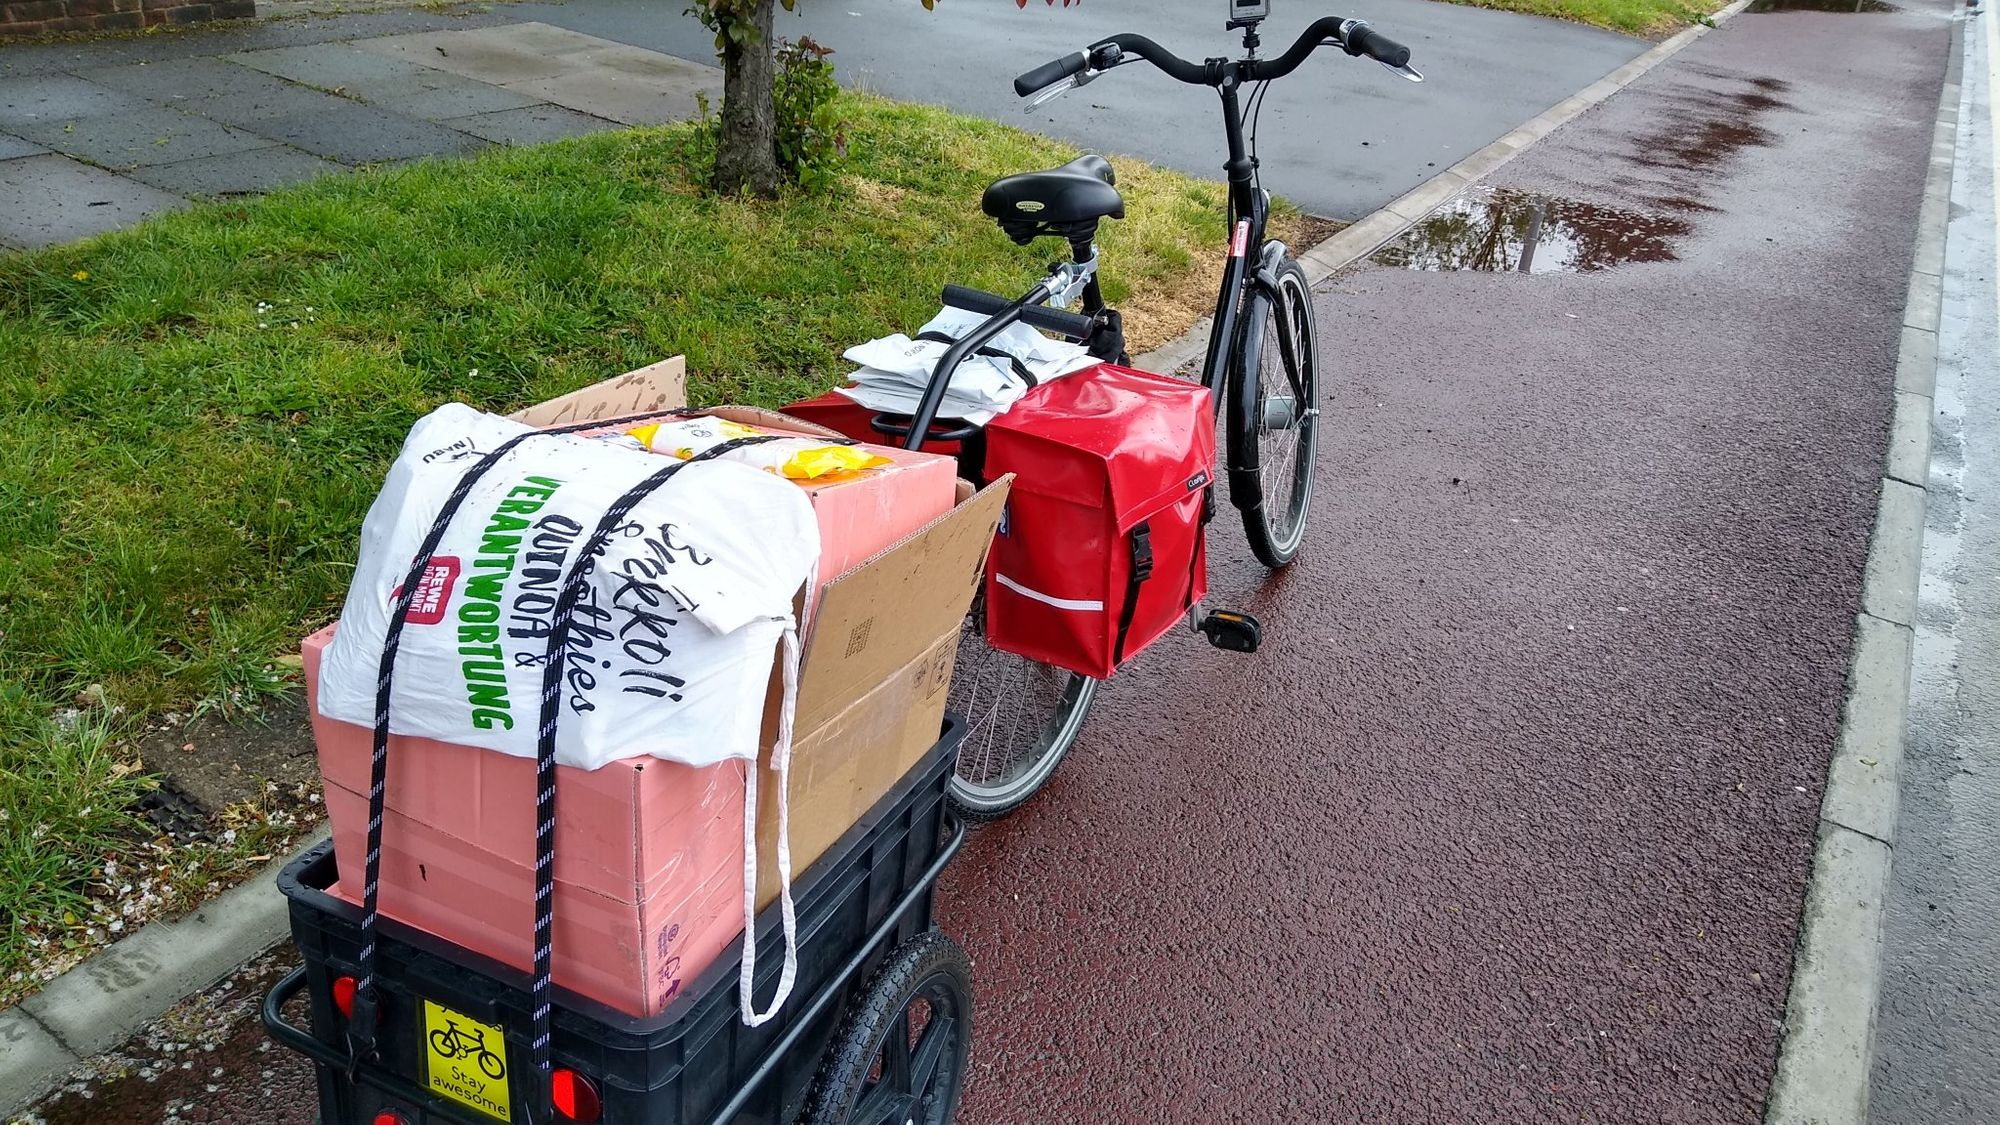 The cargo bikes keeping us moving during a crisis